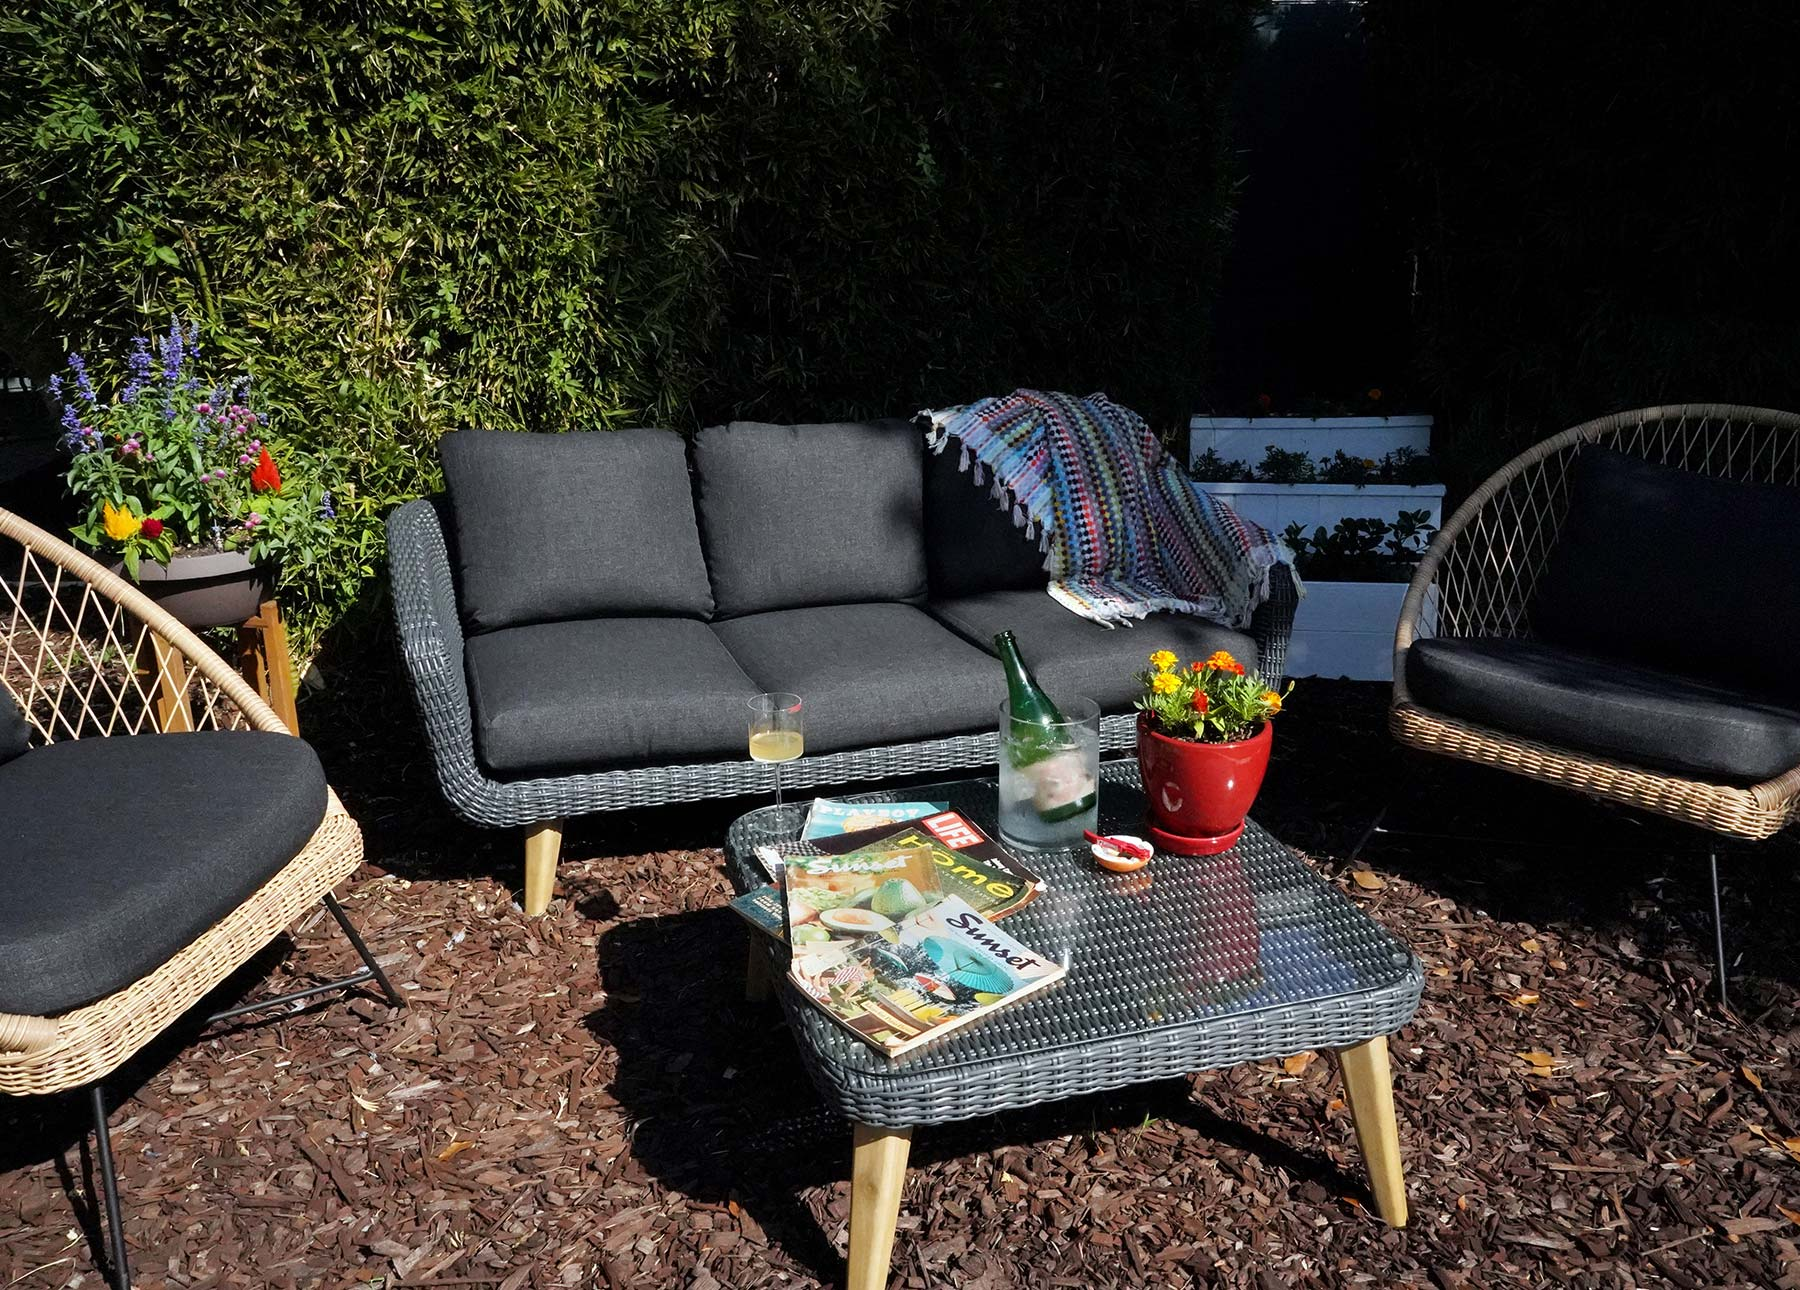 Marissa A. Ross' outdoor entertaining space consists of two Article Aeri chairs and the Article Ora sofa.